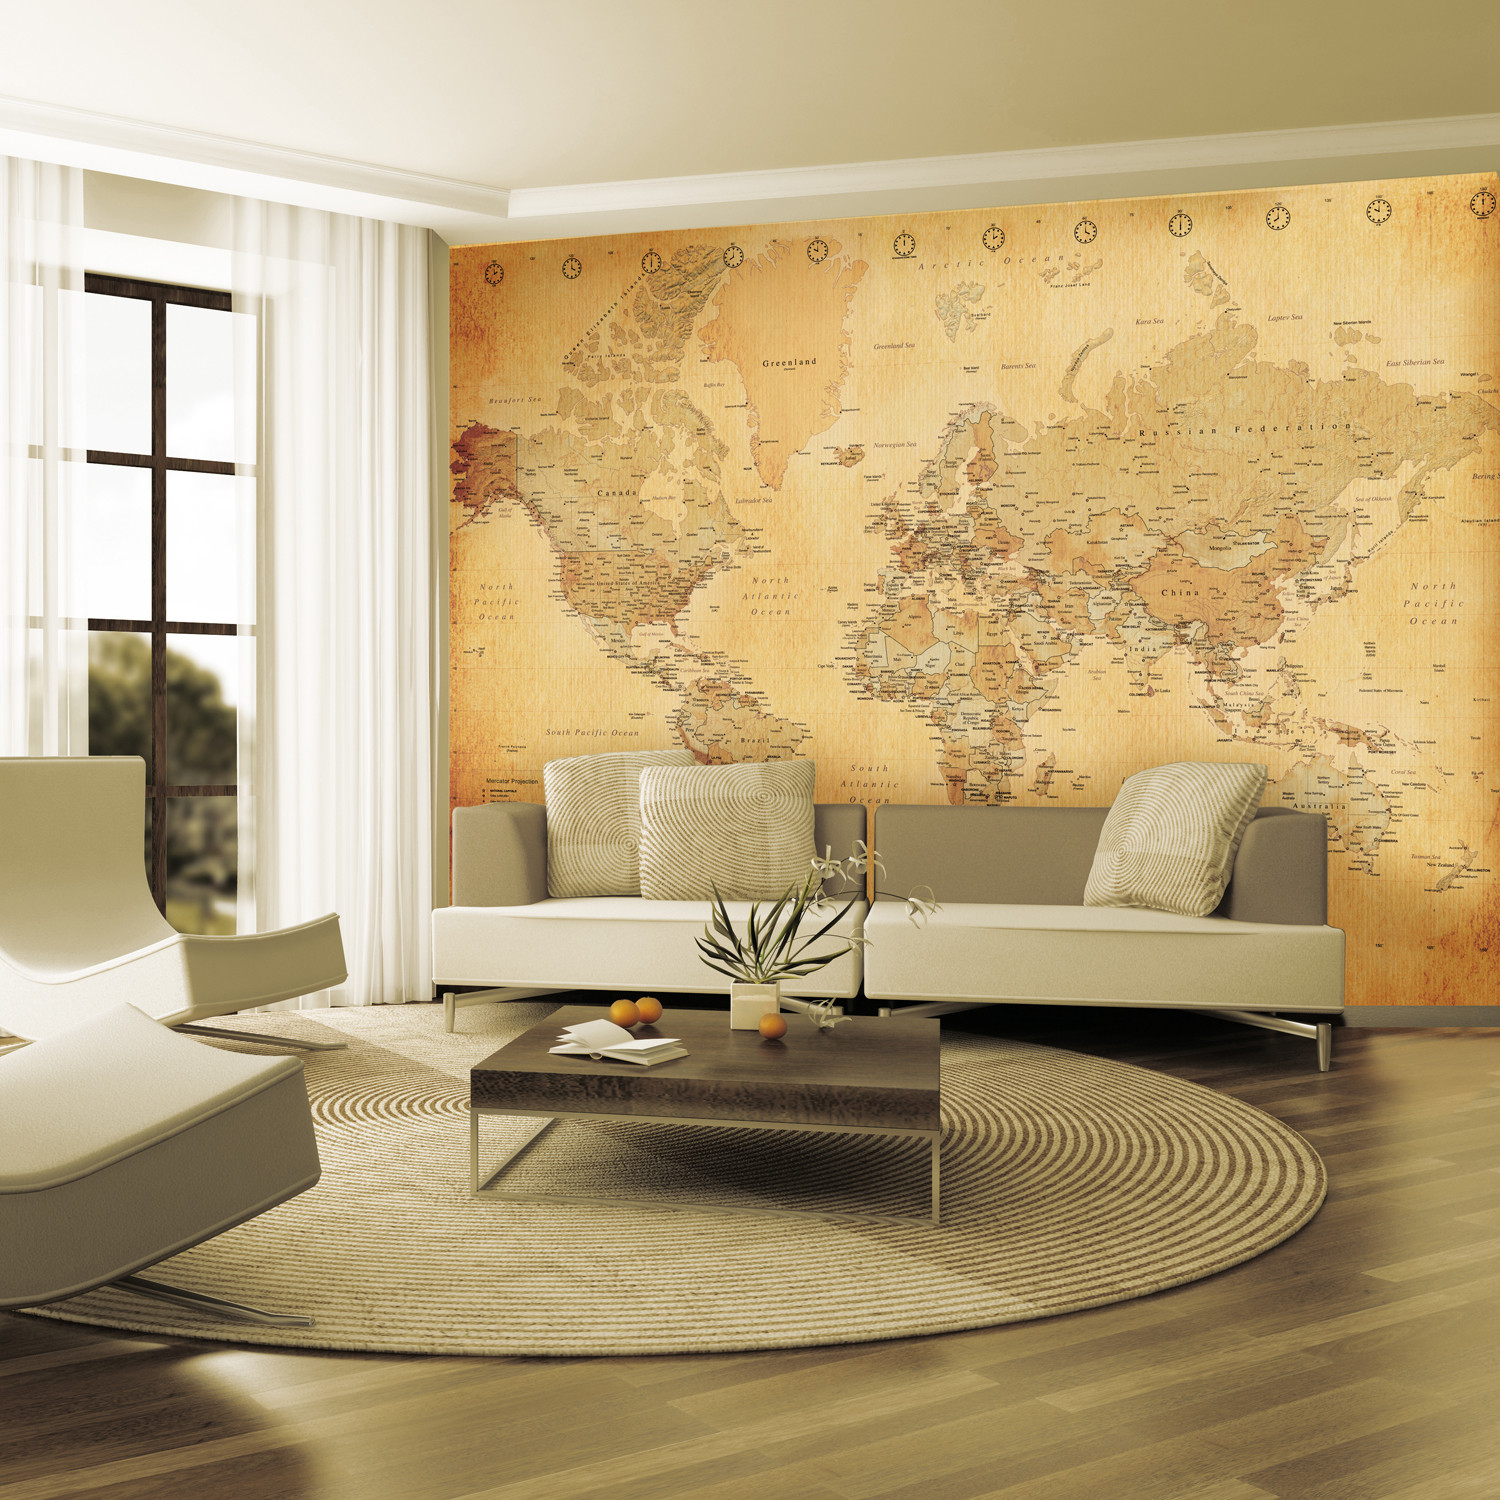 Vintage world map 1 wall murals touch of modern for Antique wallpaper mural